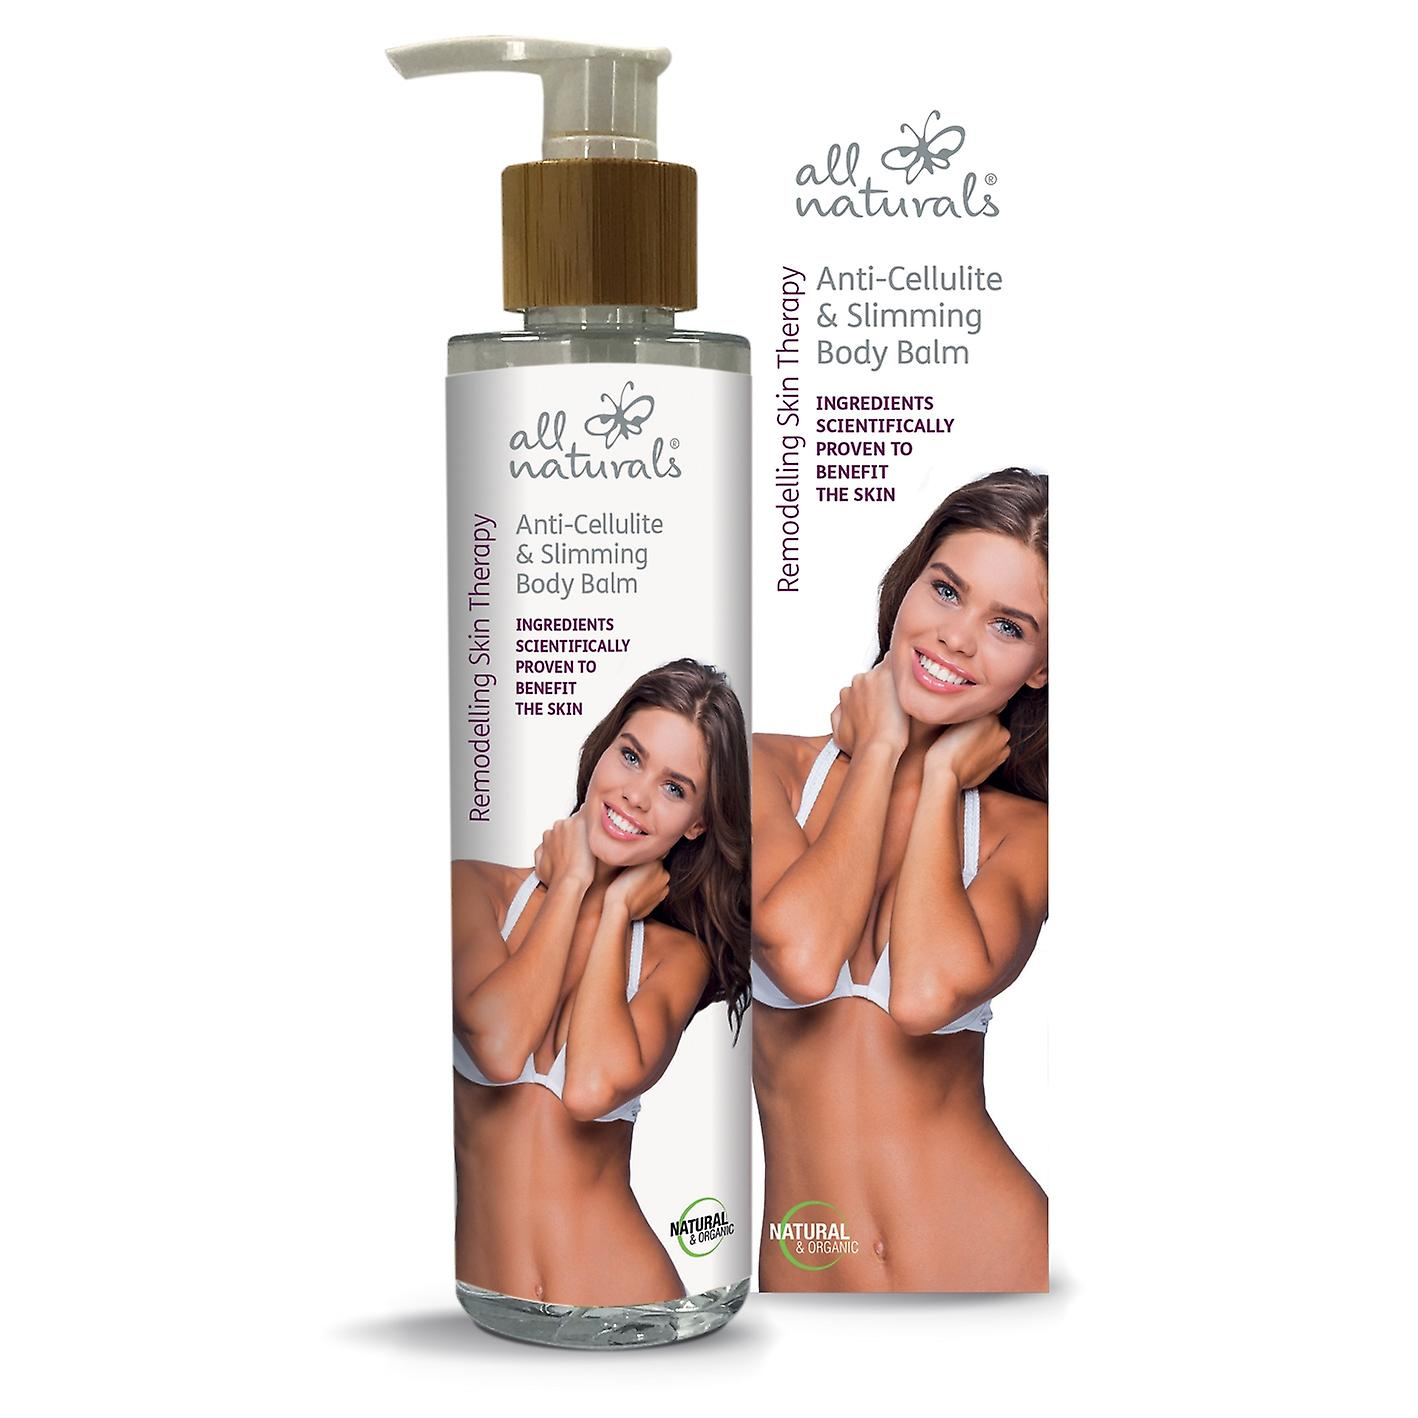 Anti-Cellulite & Slimming Organic Body Balm. Remodelling Skin Therapy. 200ml